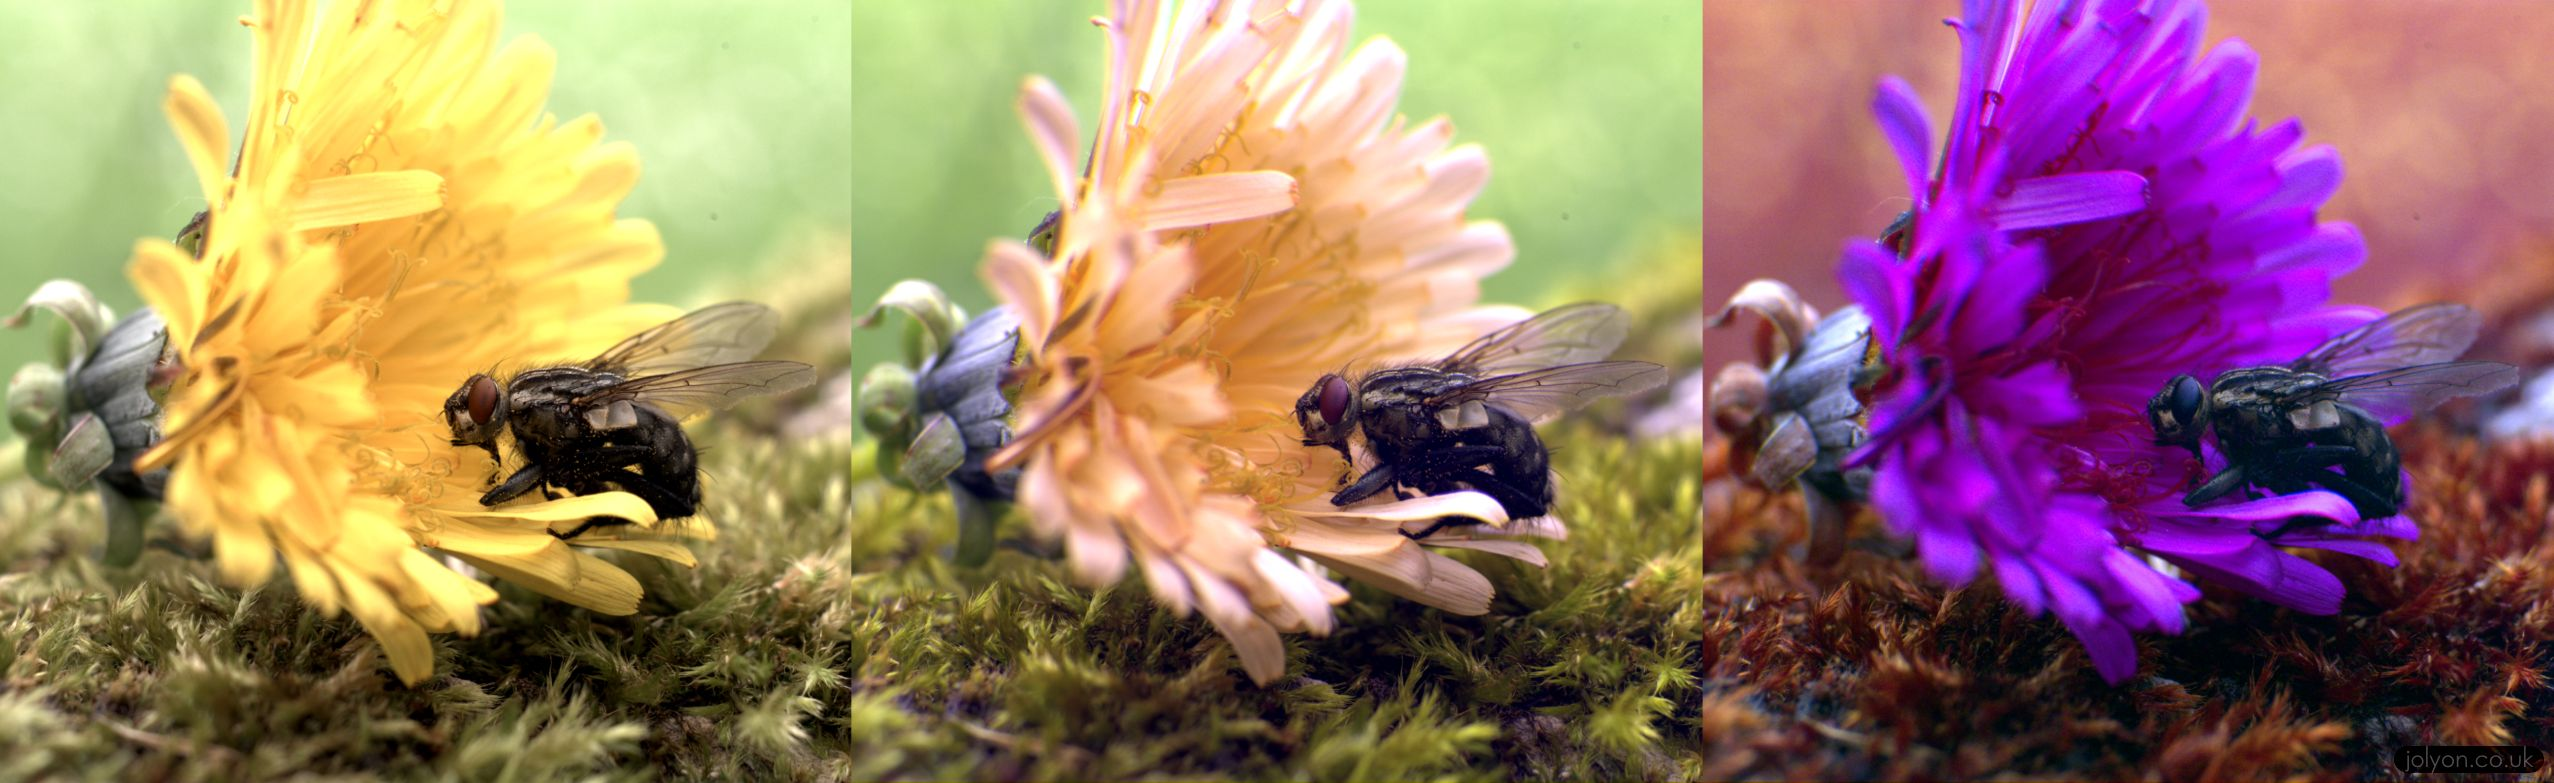 Fly sitting on a dandilion flower, shown in Human (LMS, left), Jumping Spider (middle, LWS, MWS, UV), and Fly vision (right, drosophila Rh6, Rh5, Rh3).